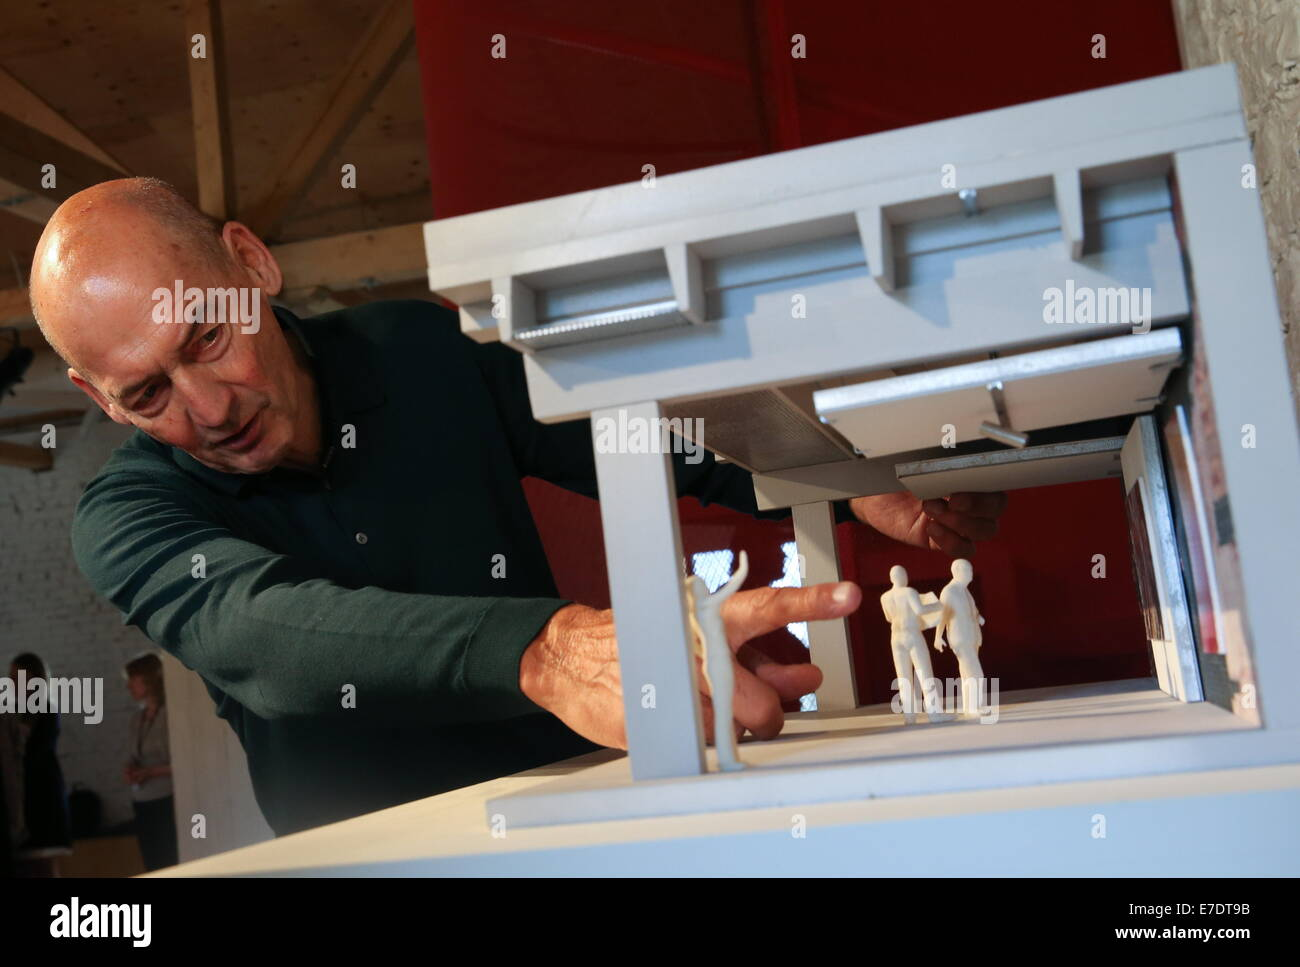 moscow russia 15th sep 2014 rem koolhaas architect for the stock photo royalty free image. Black Bedroom Furniture Sets. Home Design Ideas